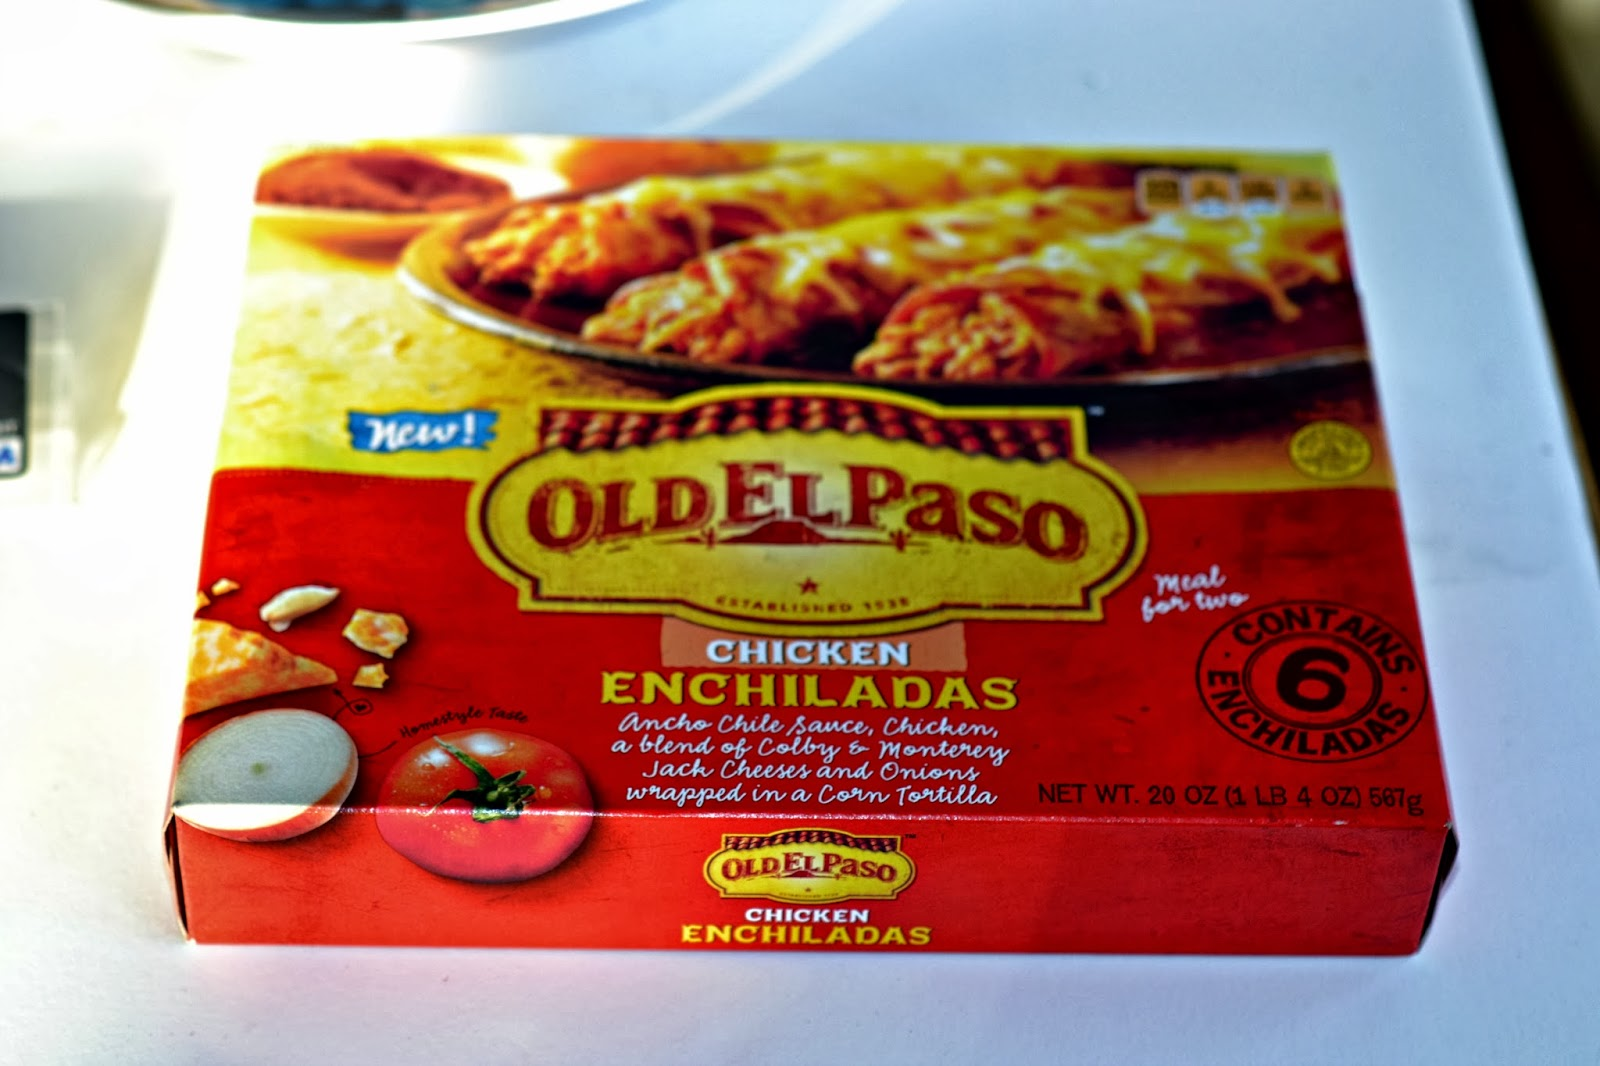 old el paso Old el paso is a brand of tex-mex-style foods from american food producer general mills these include dinner kits, tacos and tortillas, taco seasoning, sauces, condiments, rice, and refried beans old el paso products are marketed across the globe the brand is owned by general mills.